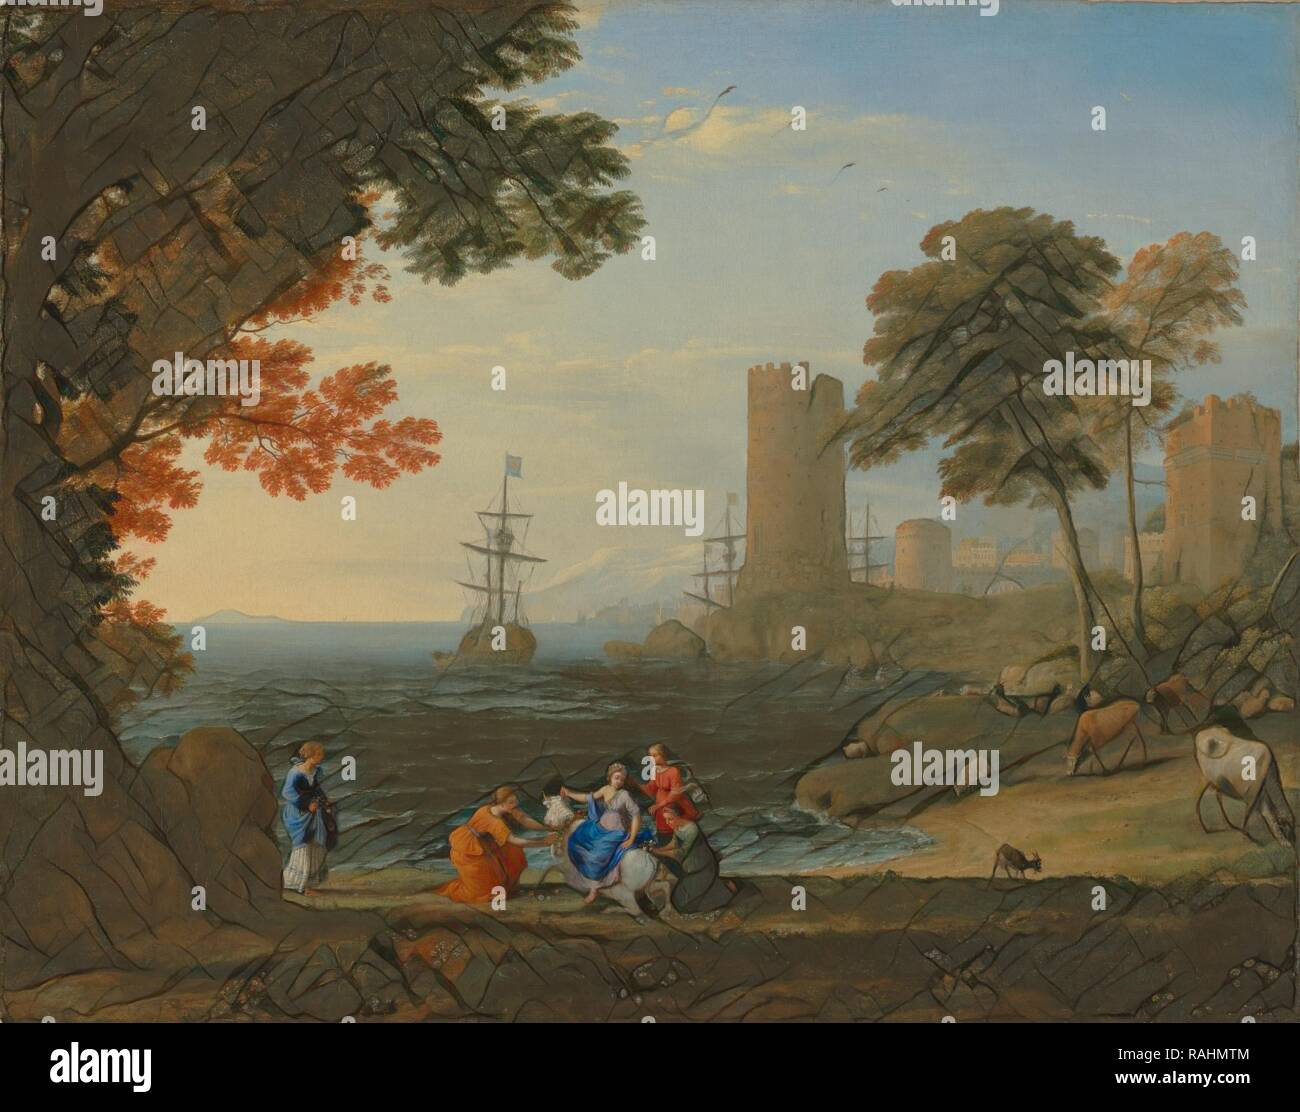 Coast View with the Abduction of Europa, Claude Lorrain (Claude Gellée) (French, 1604 or 1605 ? - 1682), Rome, Italy reimagined - Stock Image